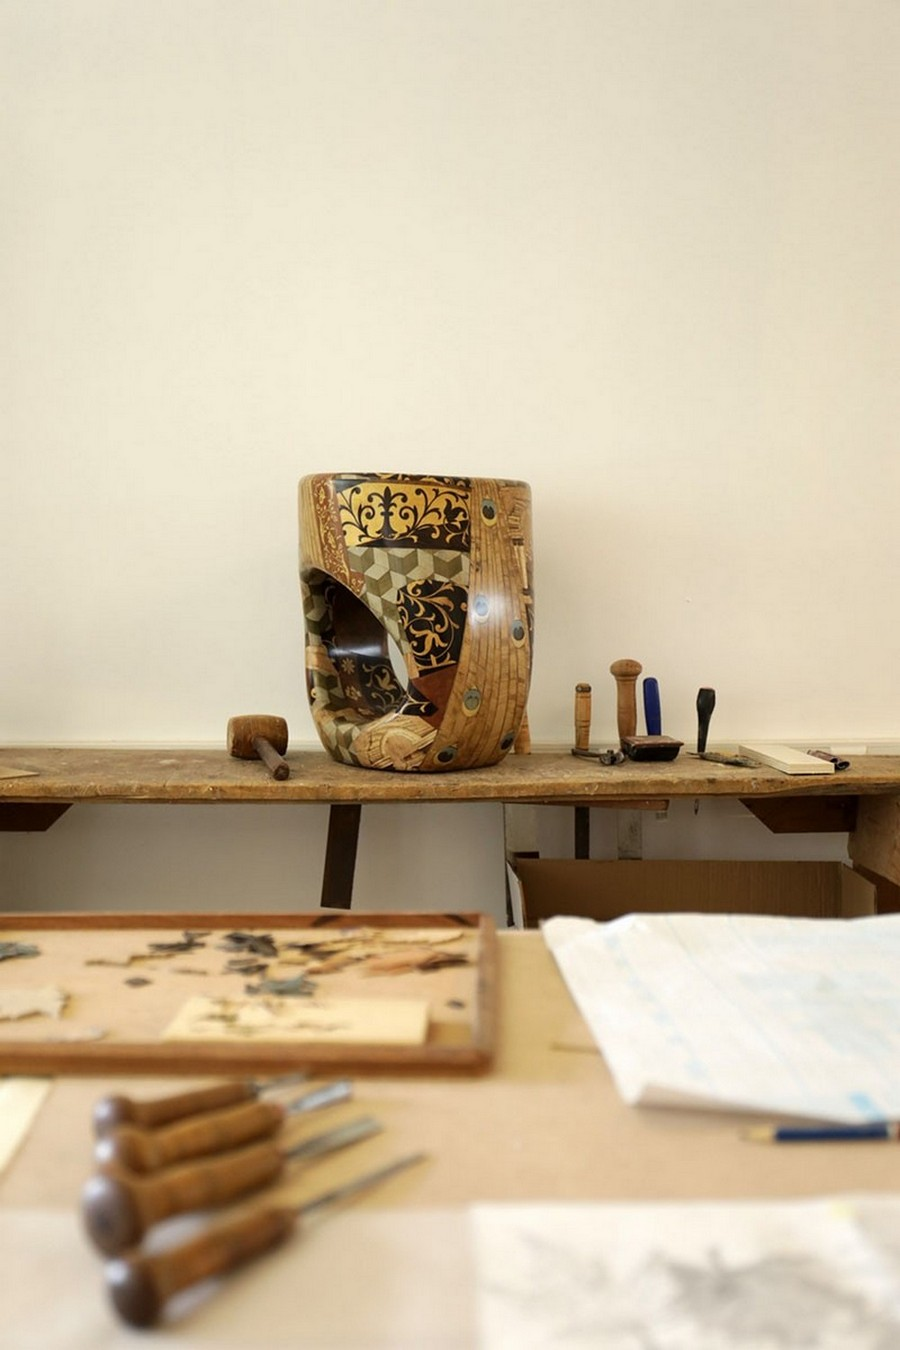 project culture Artstool: Project Culture's Exclusive Series Of Handcrafted Designs ArtsTool is Project Cultures Exclusive Series of Handcrafted Designs 3